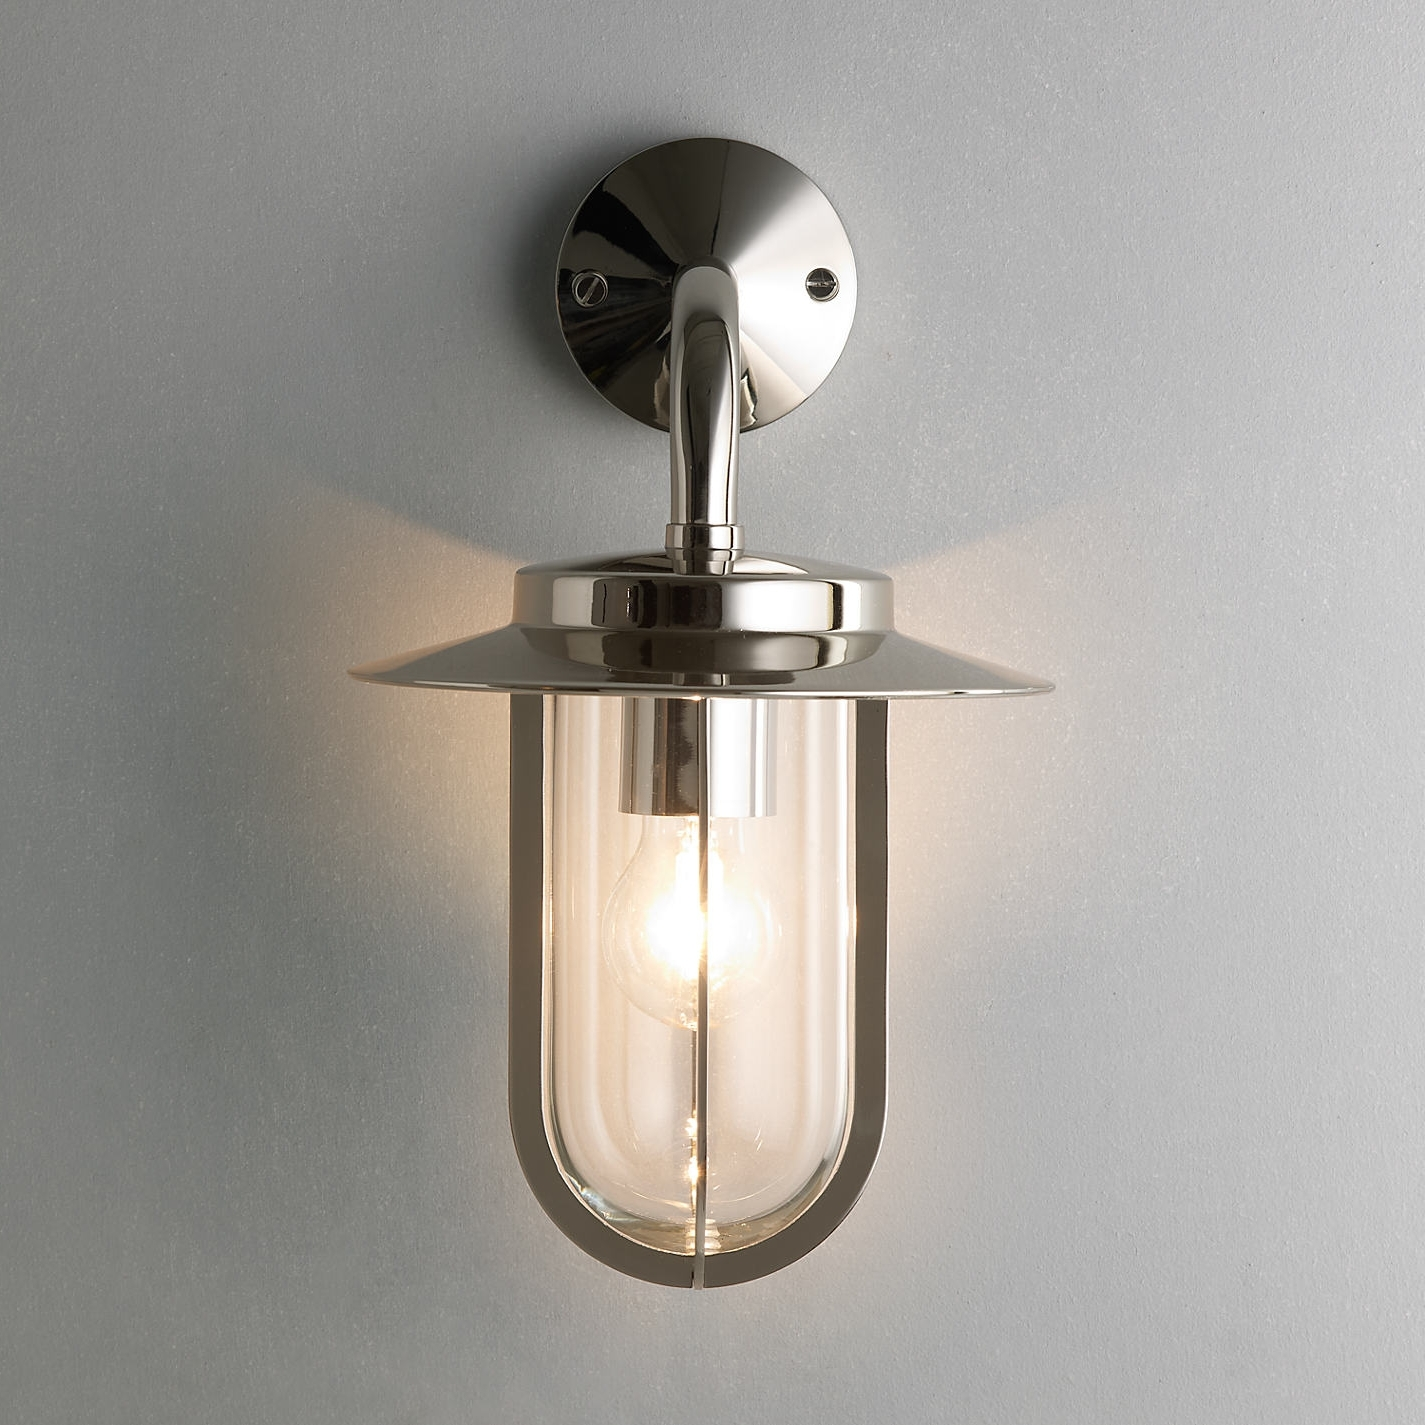 Trendy Light : Great Outdoor Wall Light With Pir Sensor For Your Blue Regarding Motion Sensor Outdoor Hanging Lights (View 18 of 20)